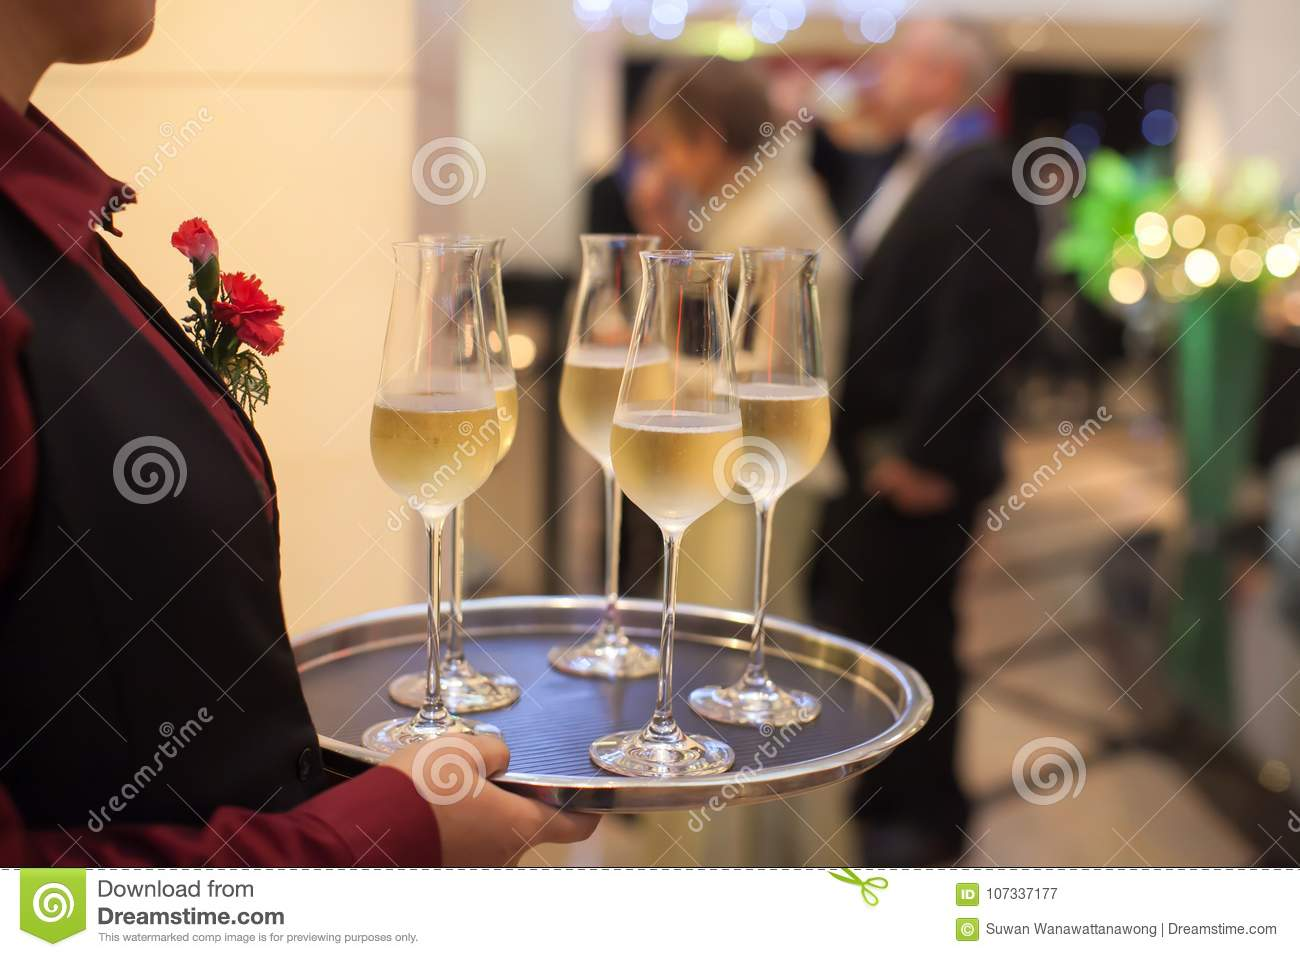 Blurry background waiter serving champagne to customer